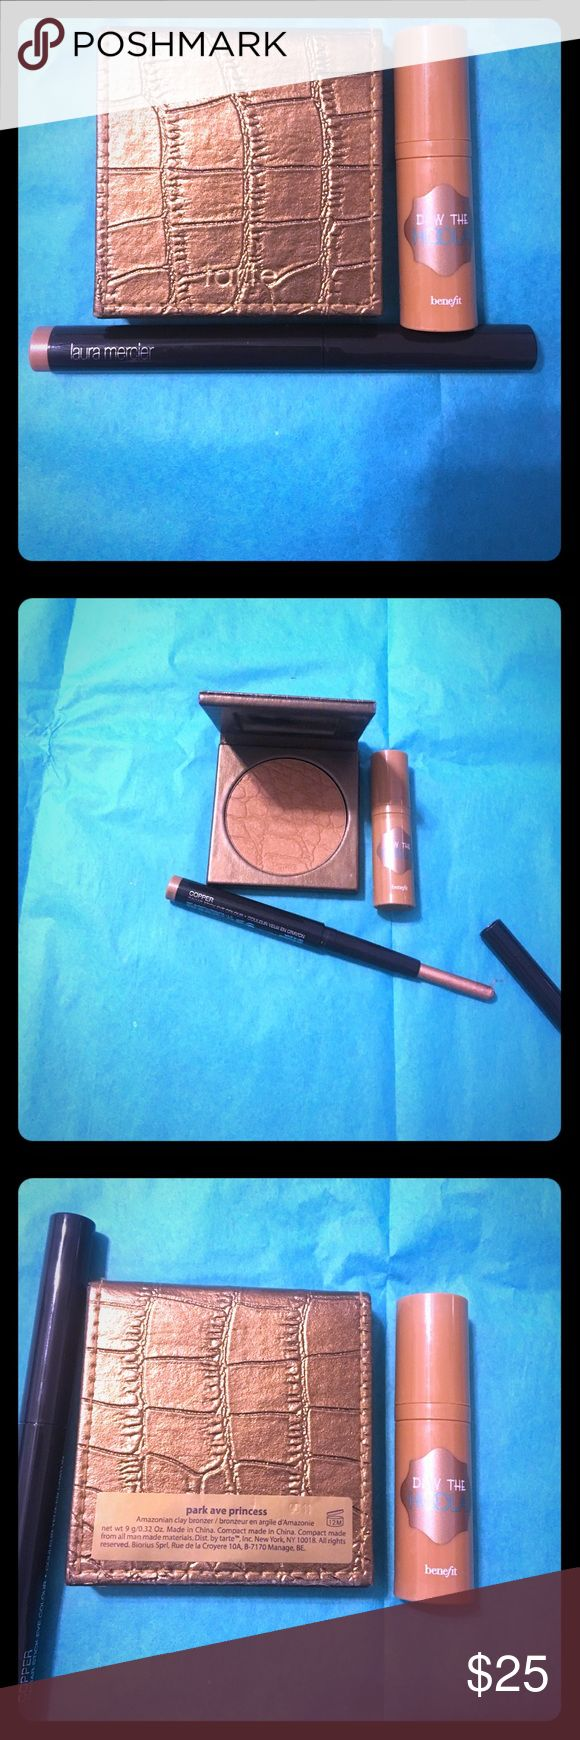 Bronze bundle Full size Tarte park avenue princess bronzer , mini benefit hula liquid bronzer and full size Cooper Laura mercier caviar stick eye color . All barely swatched Makeup